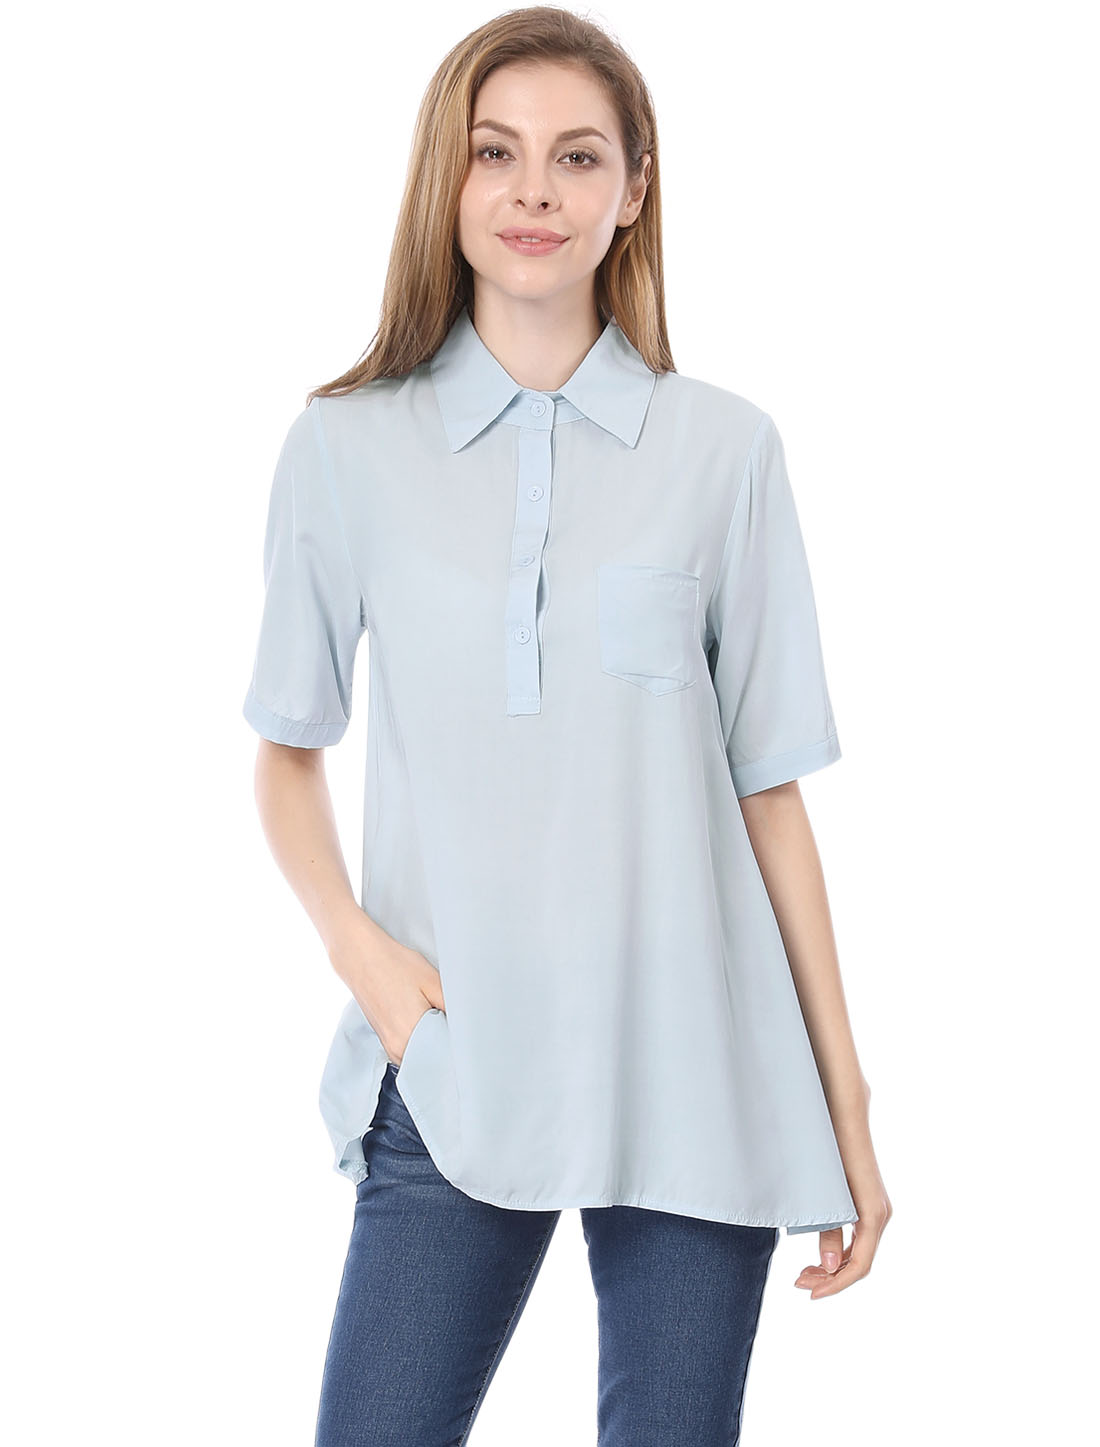 Women Leisure Button Closure Irregular Hem Loose Tunic Shirt Light Blue XL